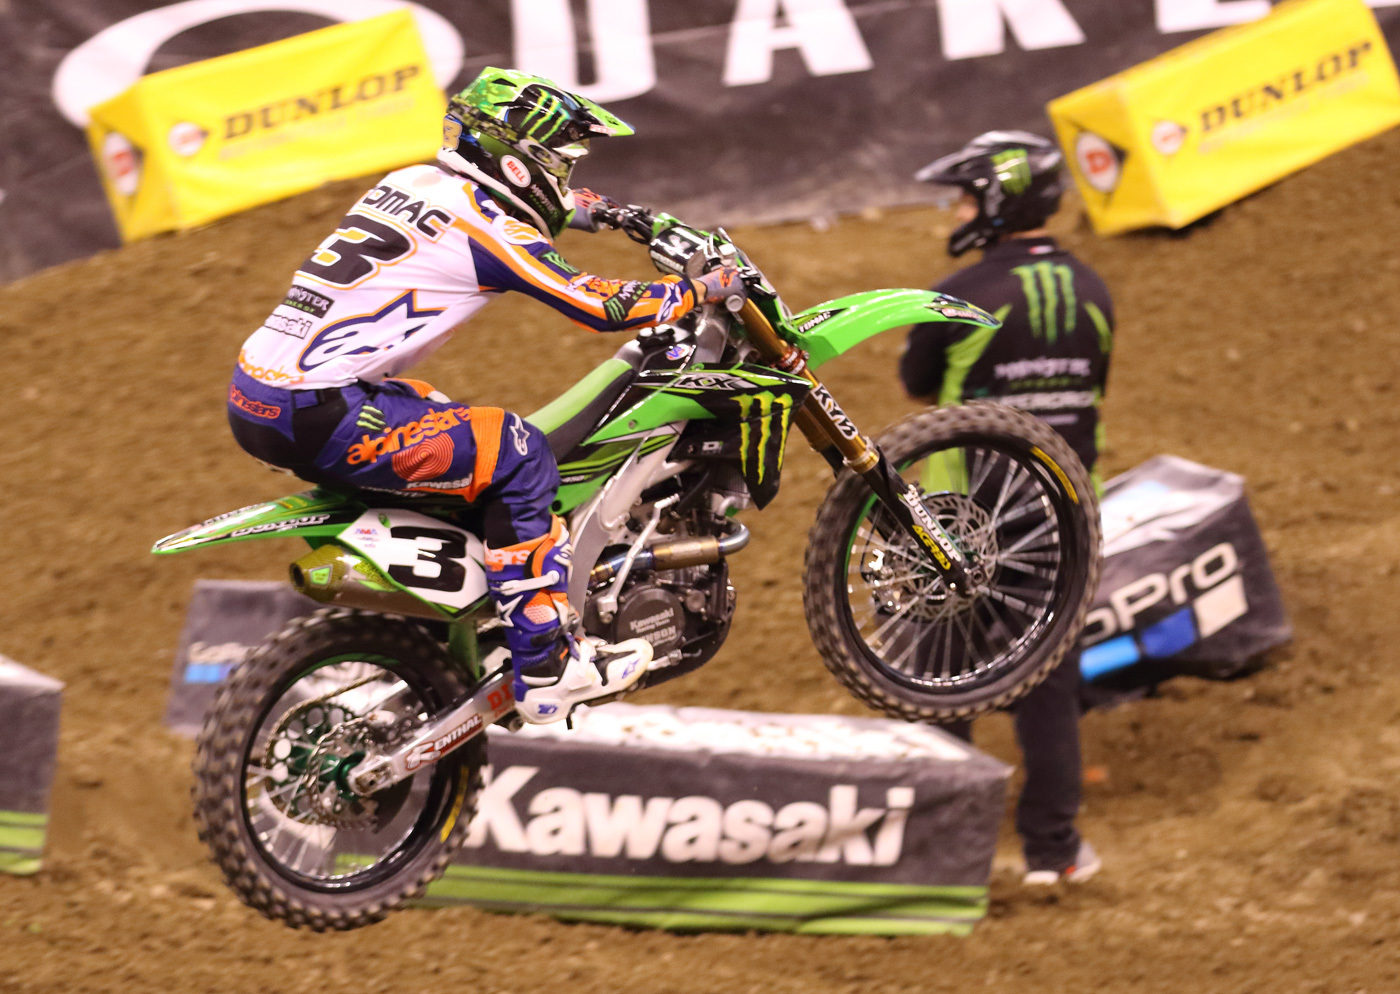 2017 Monster Energy Supercross Indianapolice_d0091546_08383875.jpg